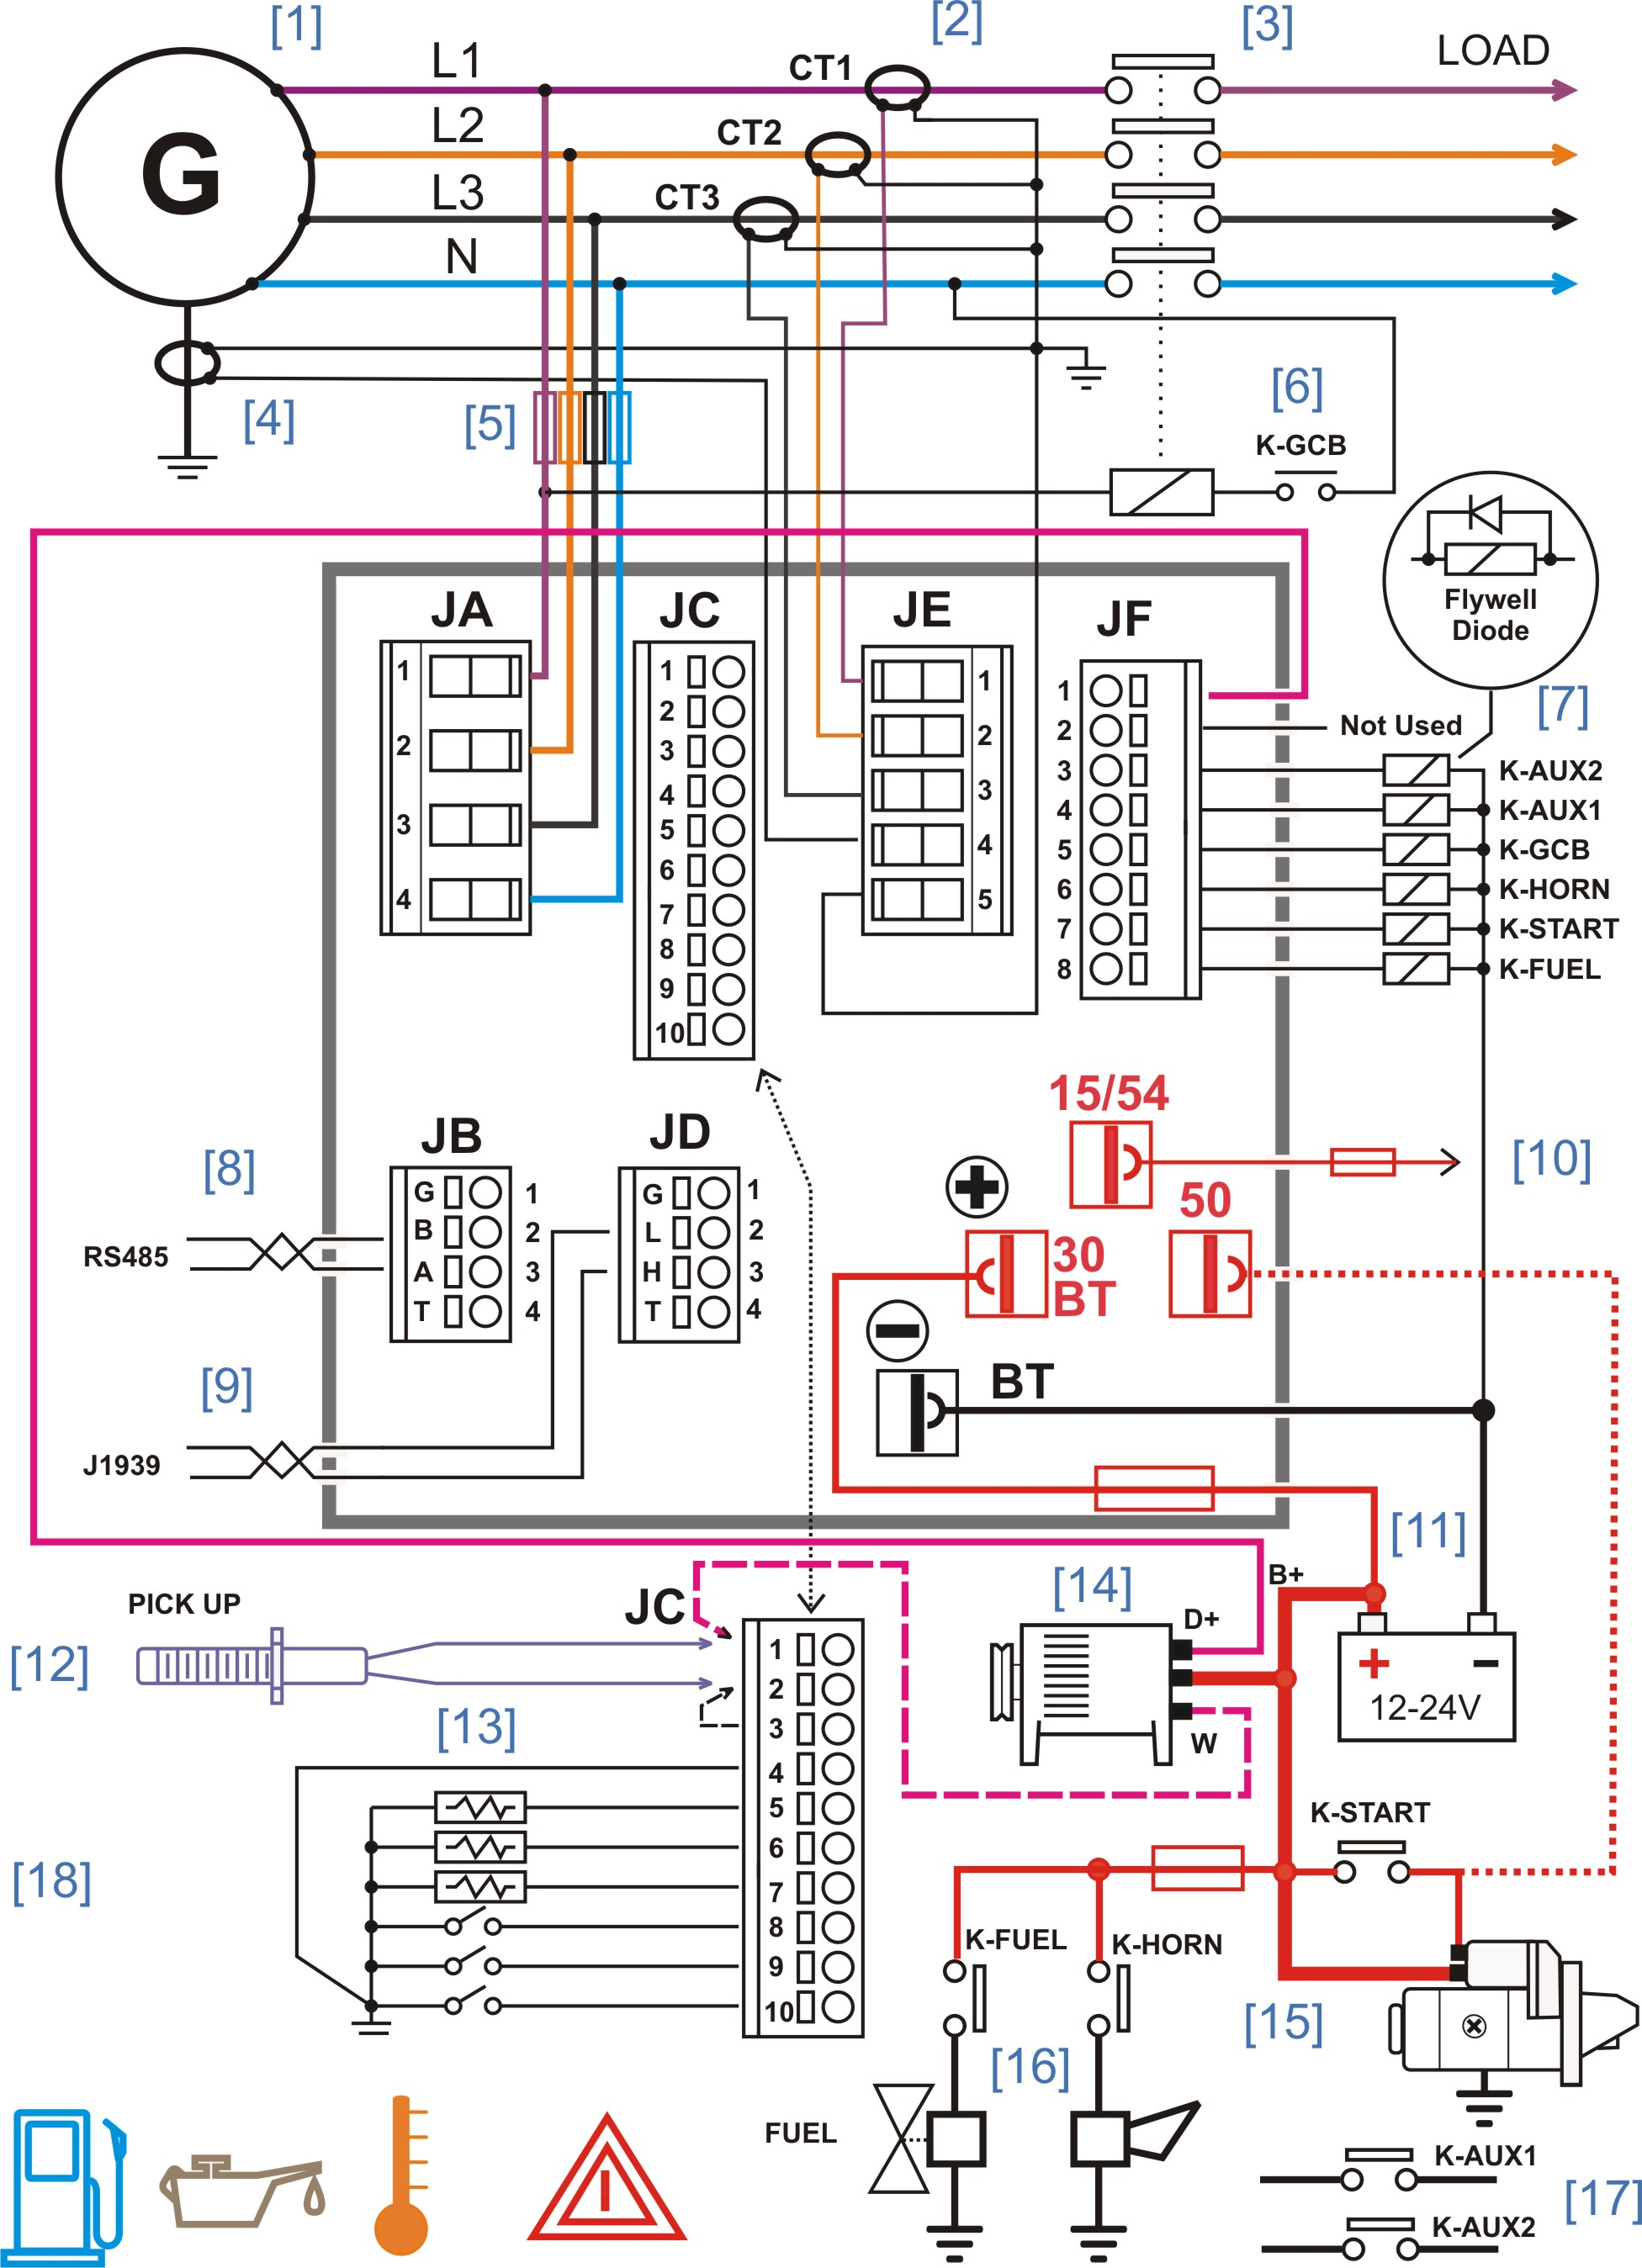 hight resolution of wiring diagram of ats panel for generator blog wiring diagram electrical wiring diagram design software free electrical wiring diagram generator